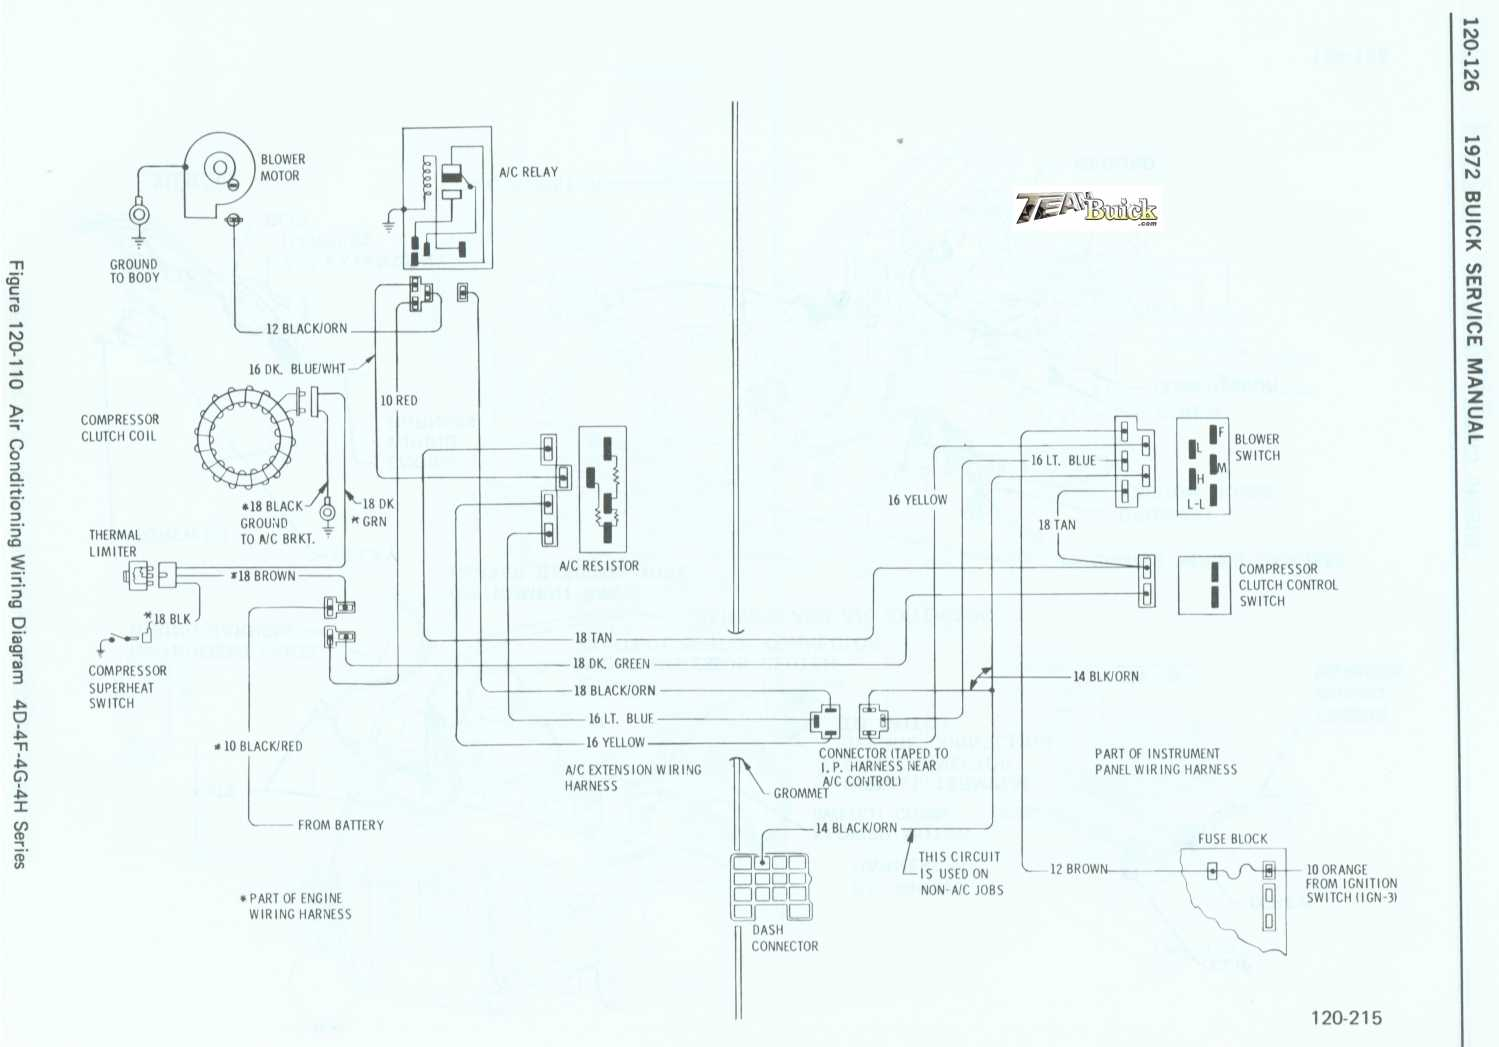 1972 Buick, Air Conditioning Wiring Diagram 4D-4F-4G-4H Series